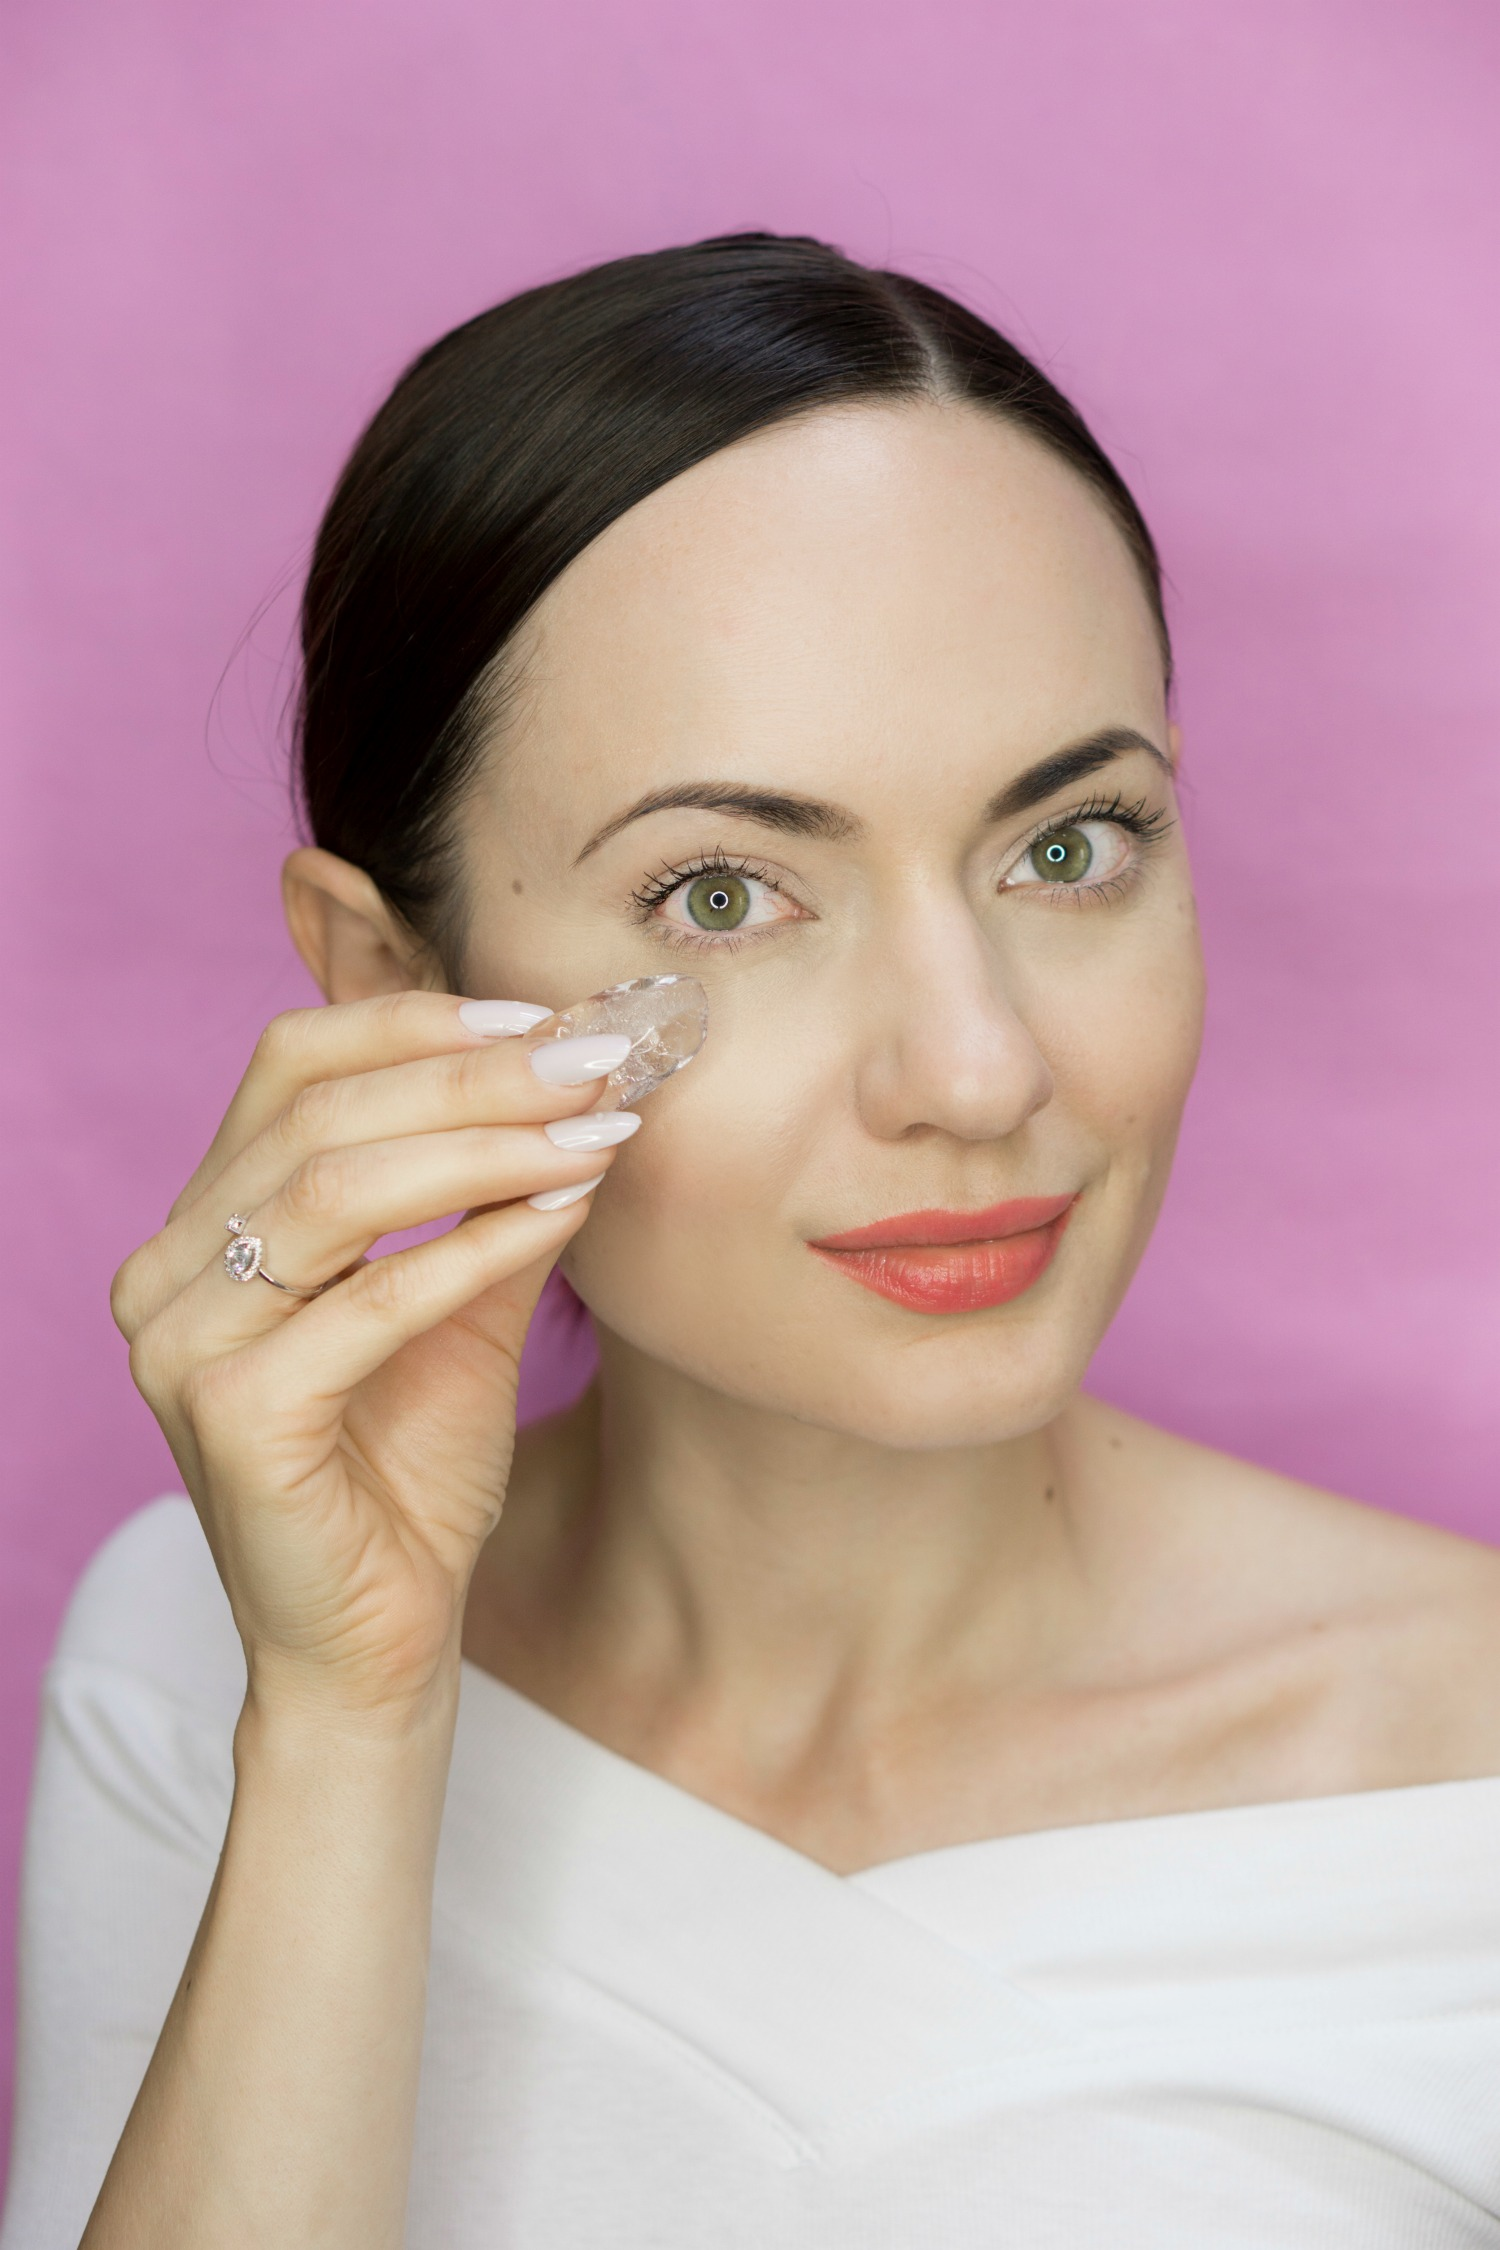 5 Ways to Get Rid of Dark Eye Circles